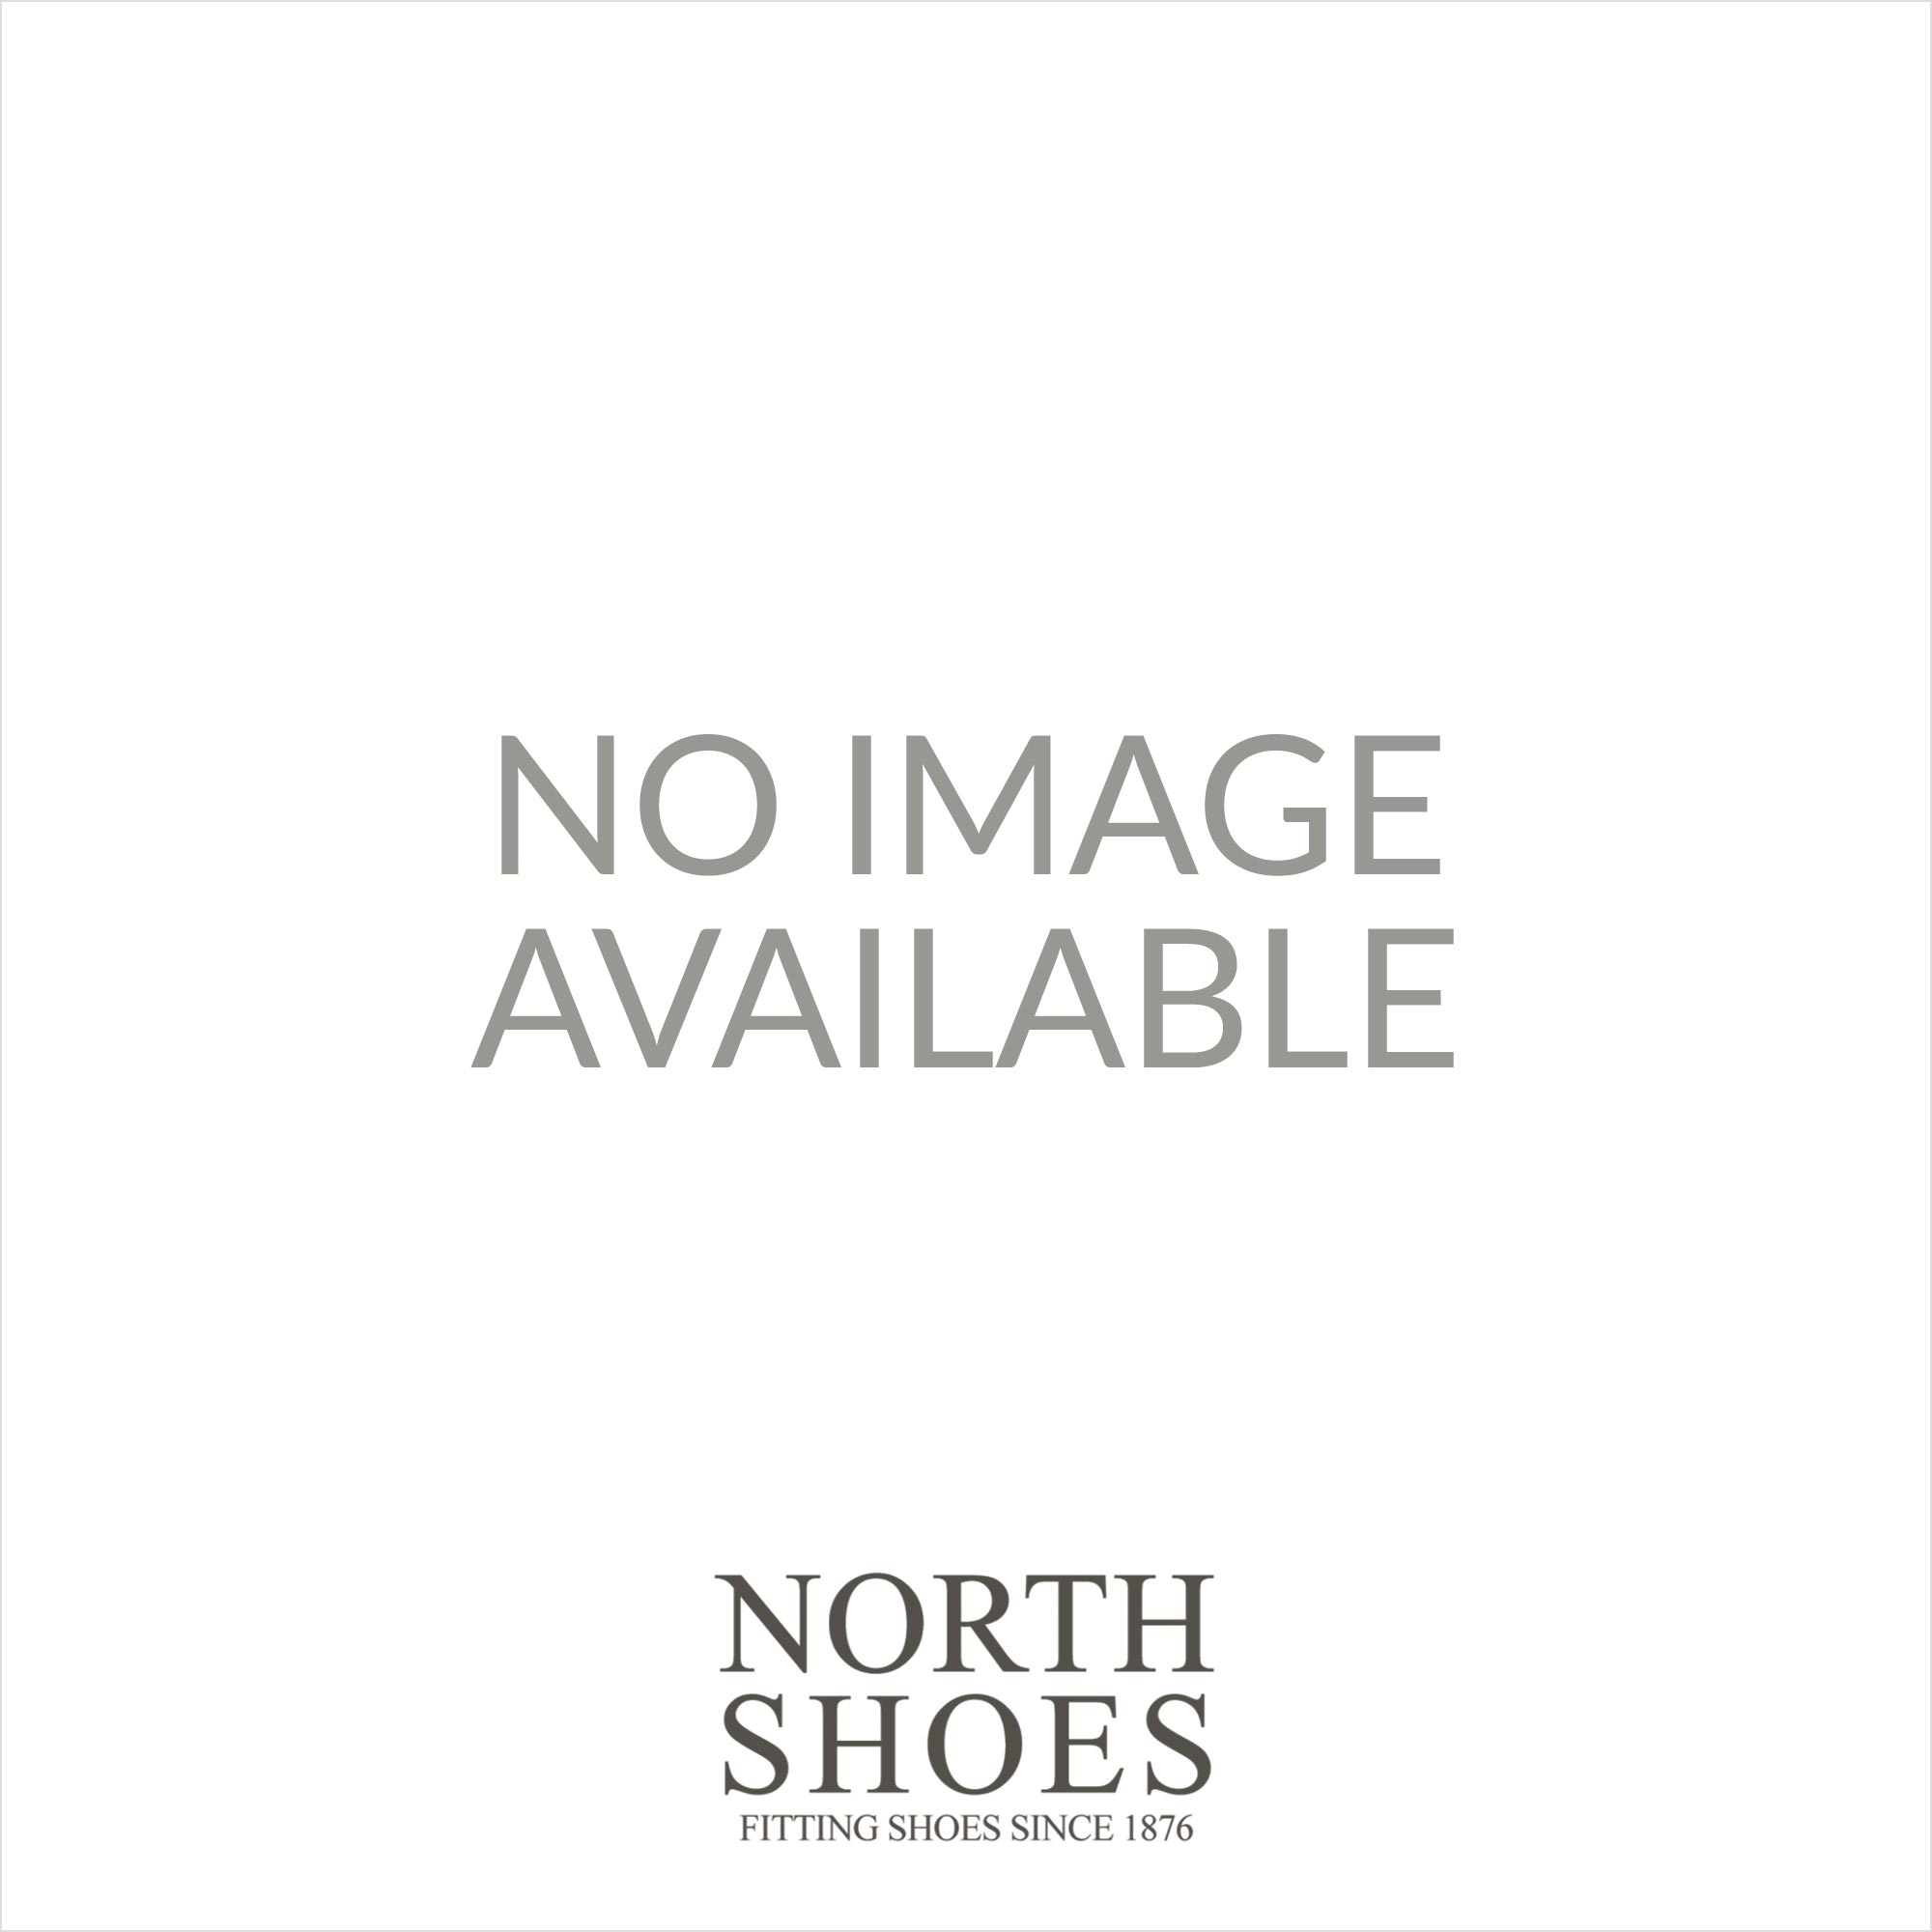 0cb8e1a0a3abdb Fitflop Banda Slide Silver Leather Womens Slip On Mule Sandal - Fitflop  from North Shoes UK